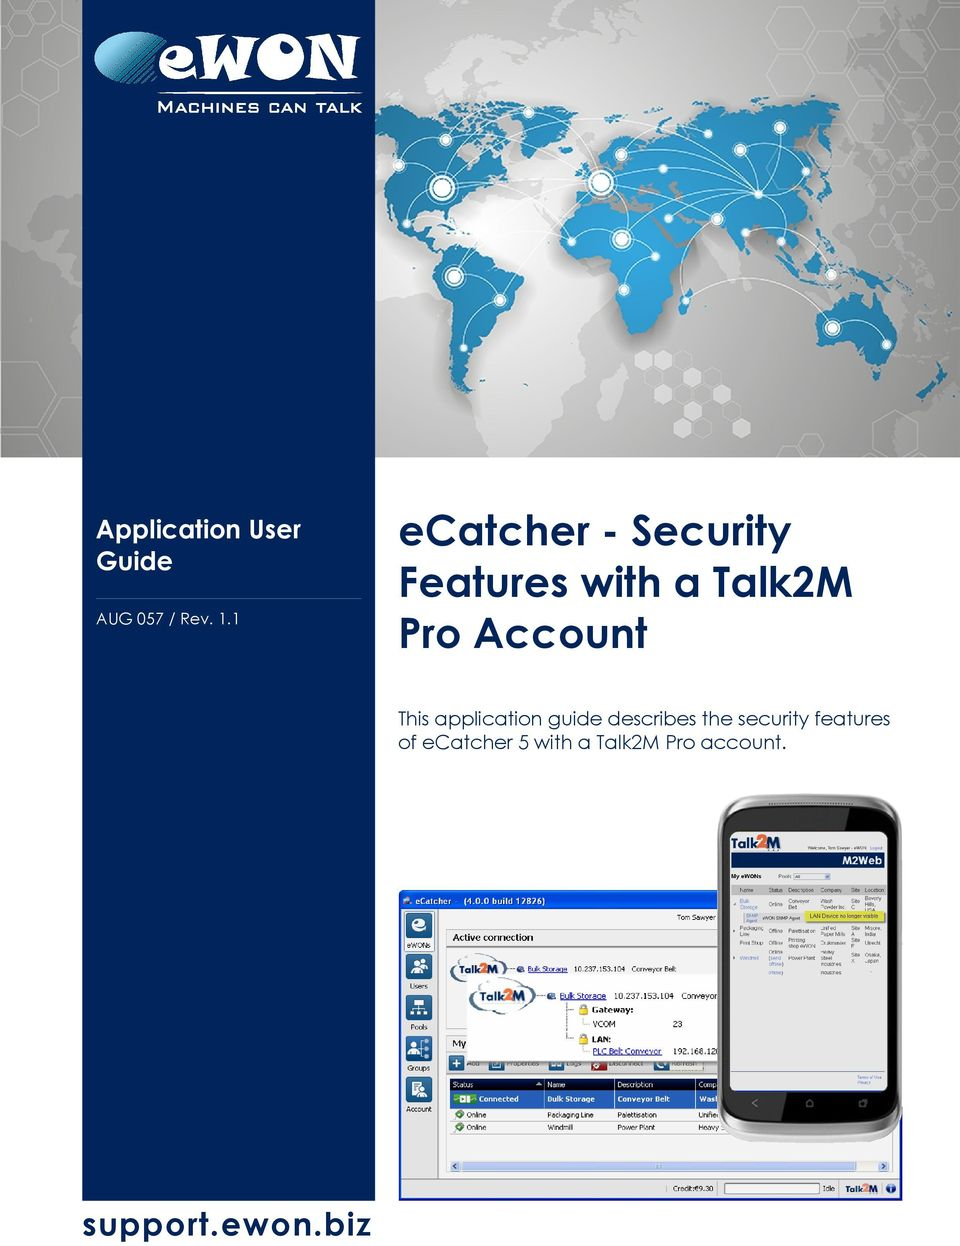 ecatcher - Security Features with a Talk2M Pro Account - PDF